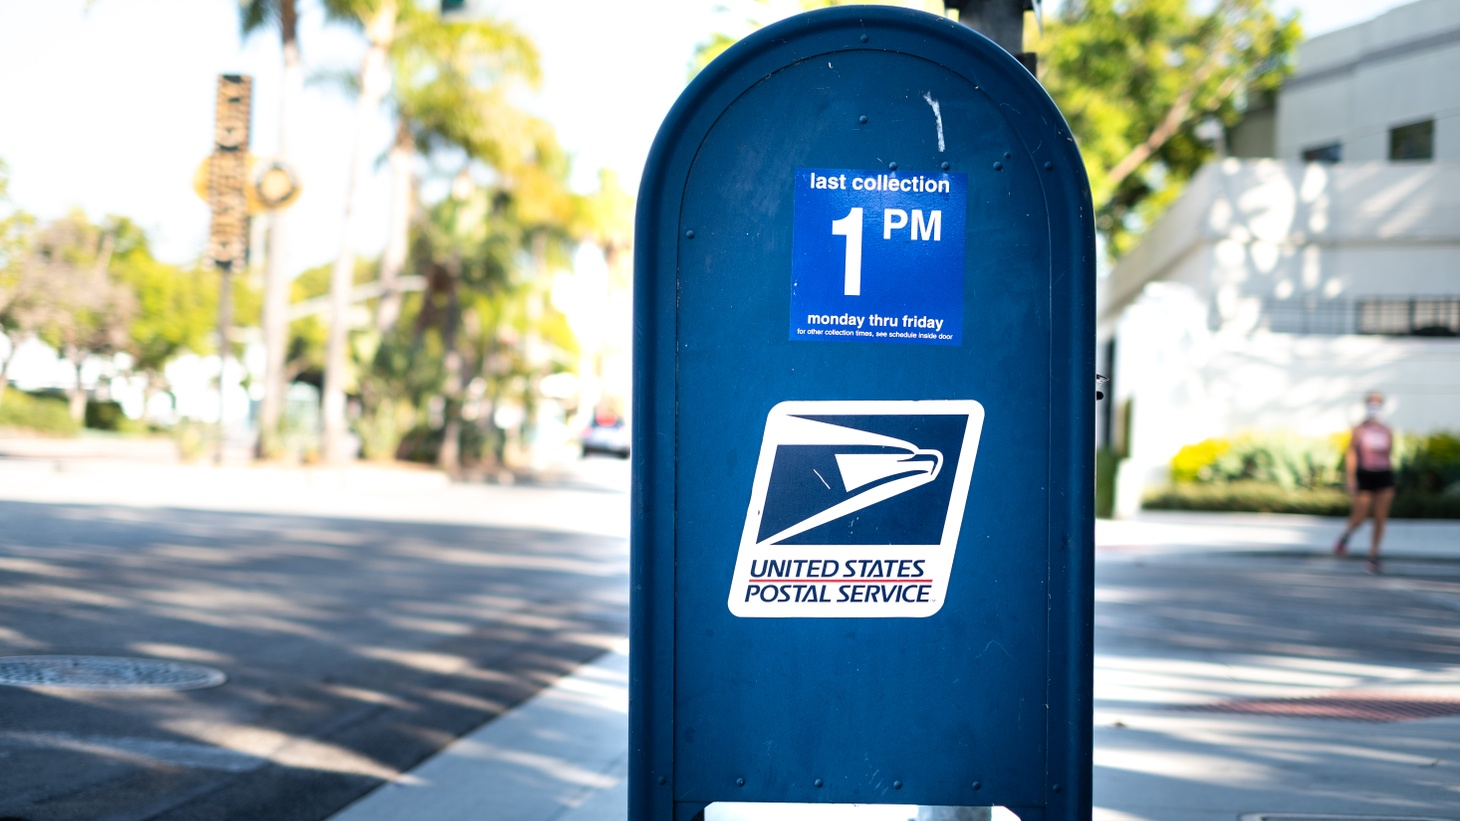 ore people are becoming pen pals to support the U.S. Postal Service and help beat quarantine loneliness.